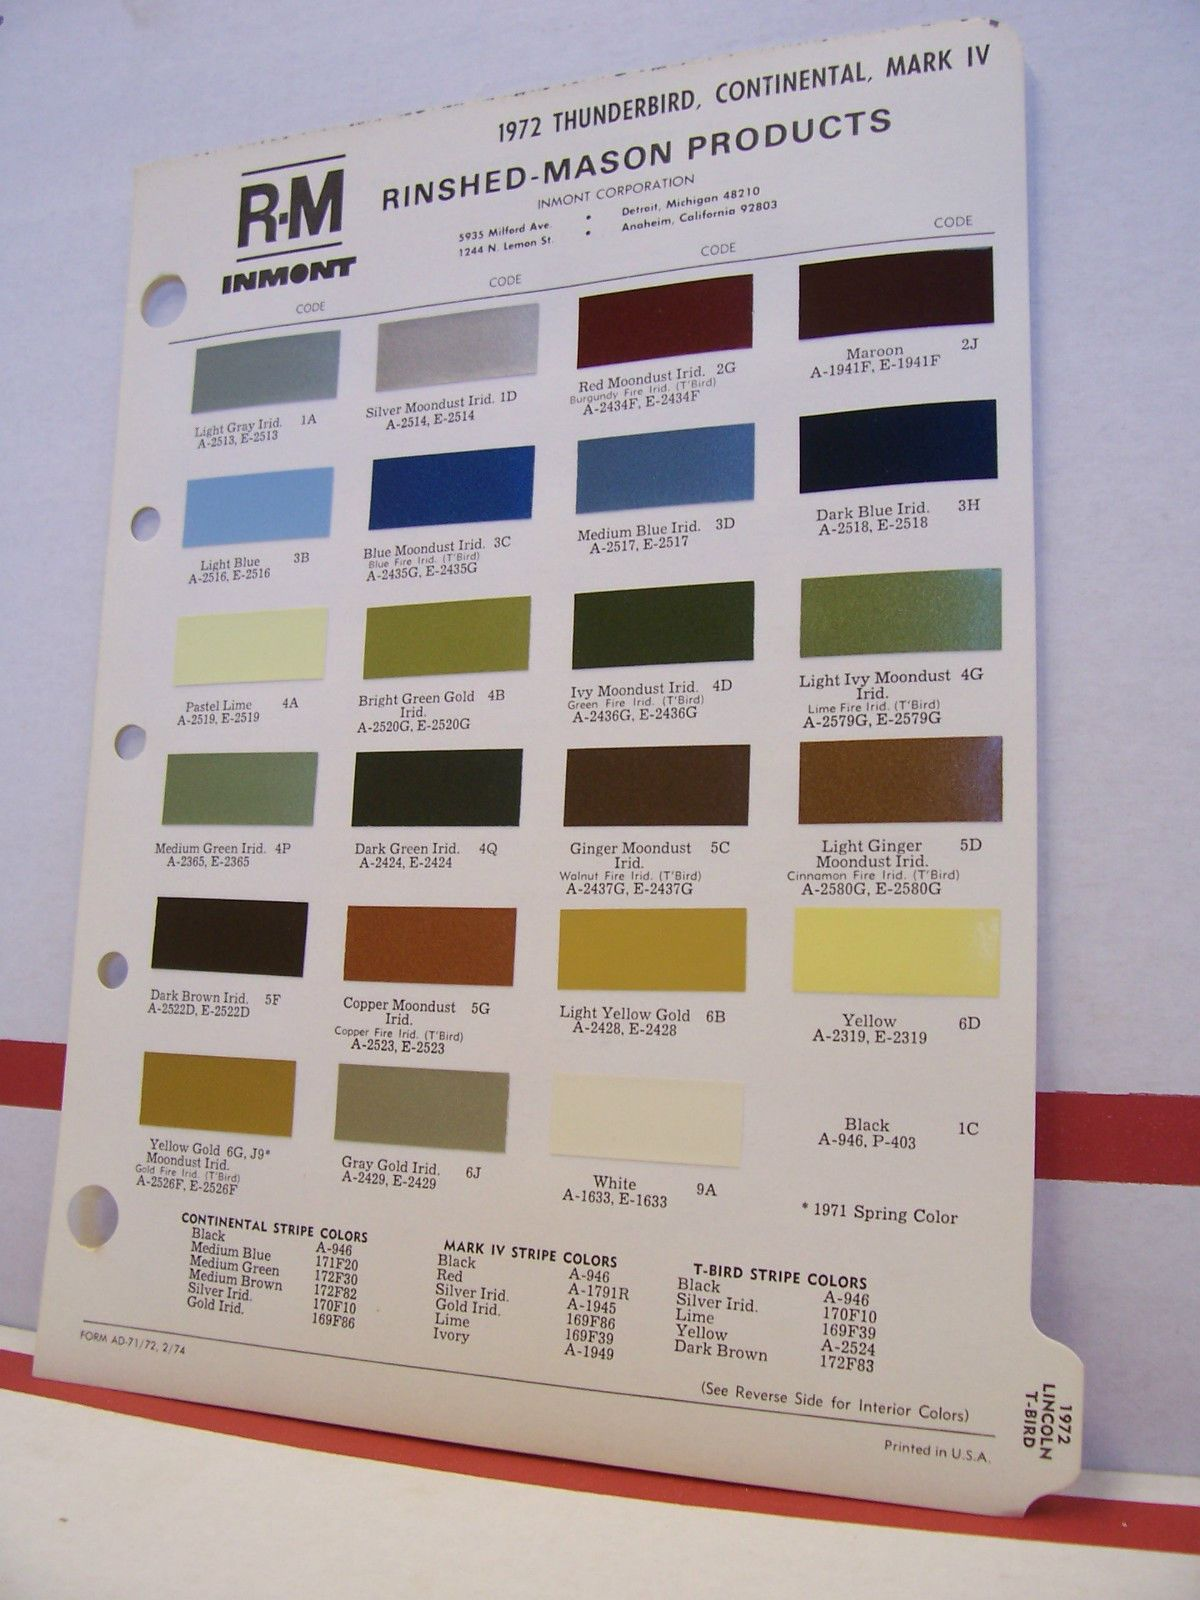 1972 lincoln continental mark iv thunderbird paint chips color 1972 lincoln continental mark iv thunderbird paint chips color chart r m 72 ford ebay nvjuhfo Choice Image